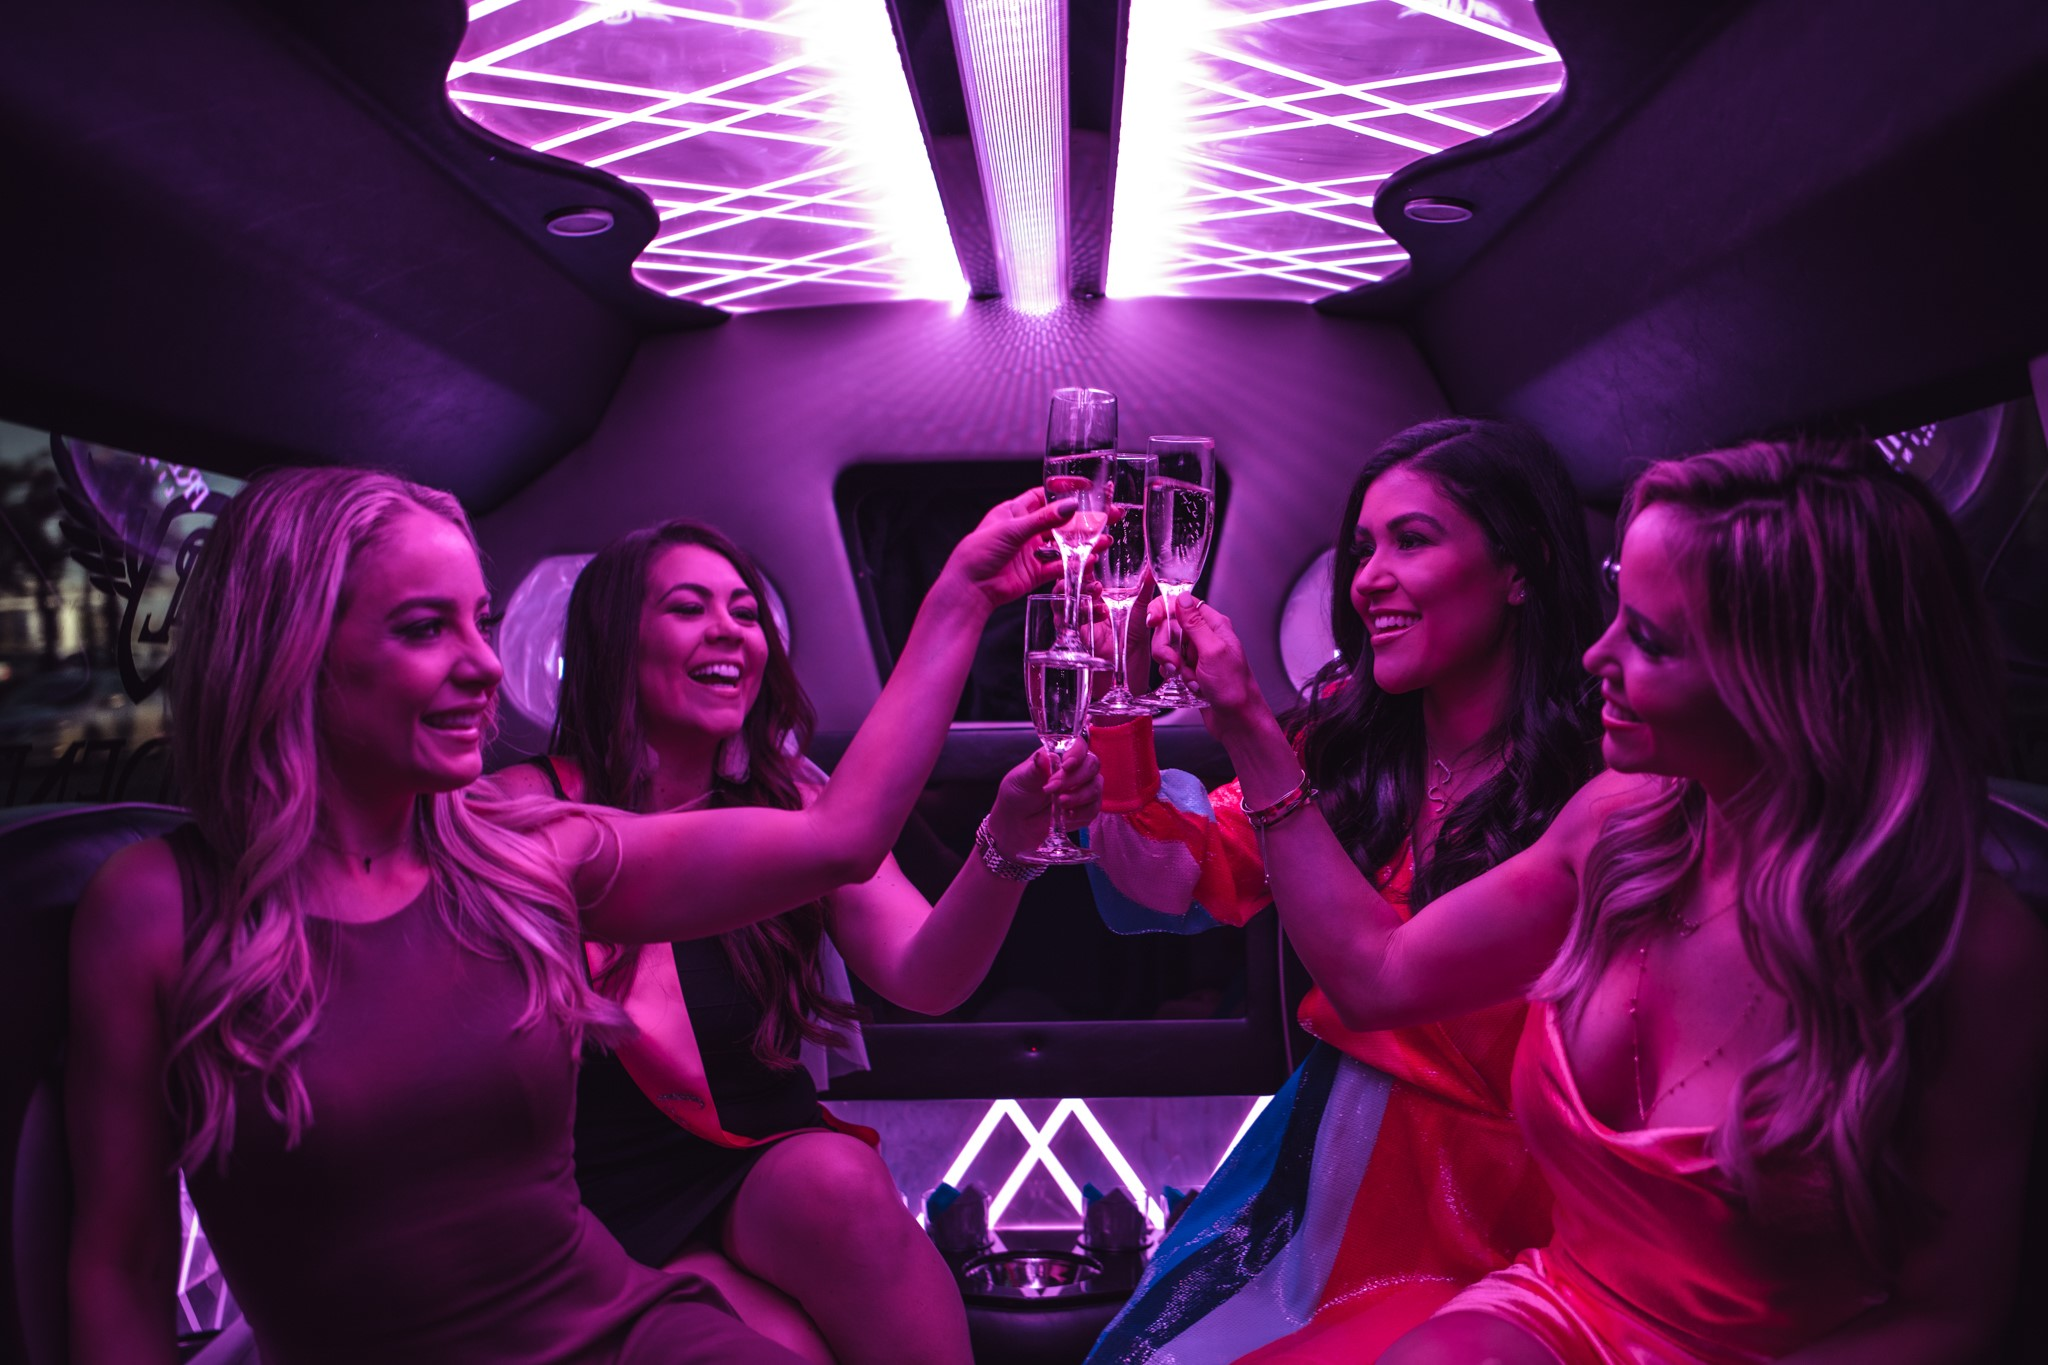 women at bachelorette party toasting champagne in the back of a limo with purple lighting